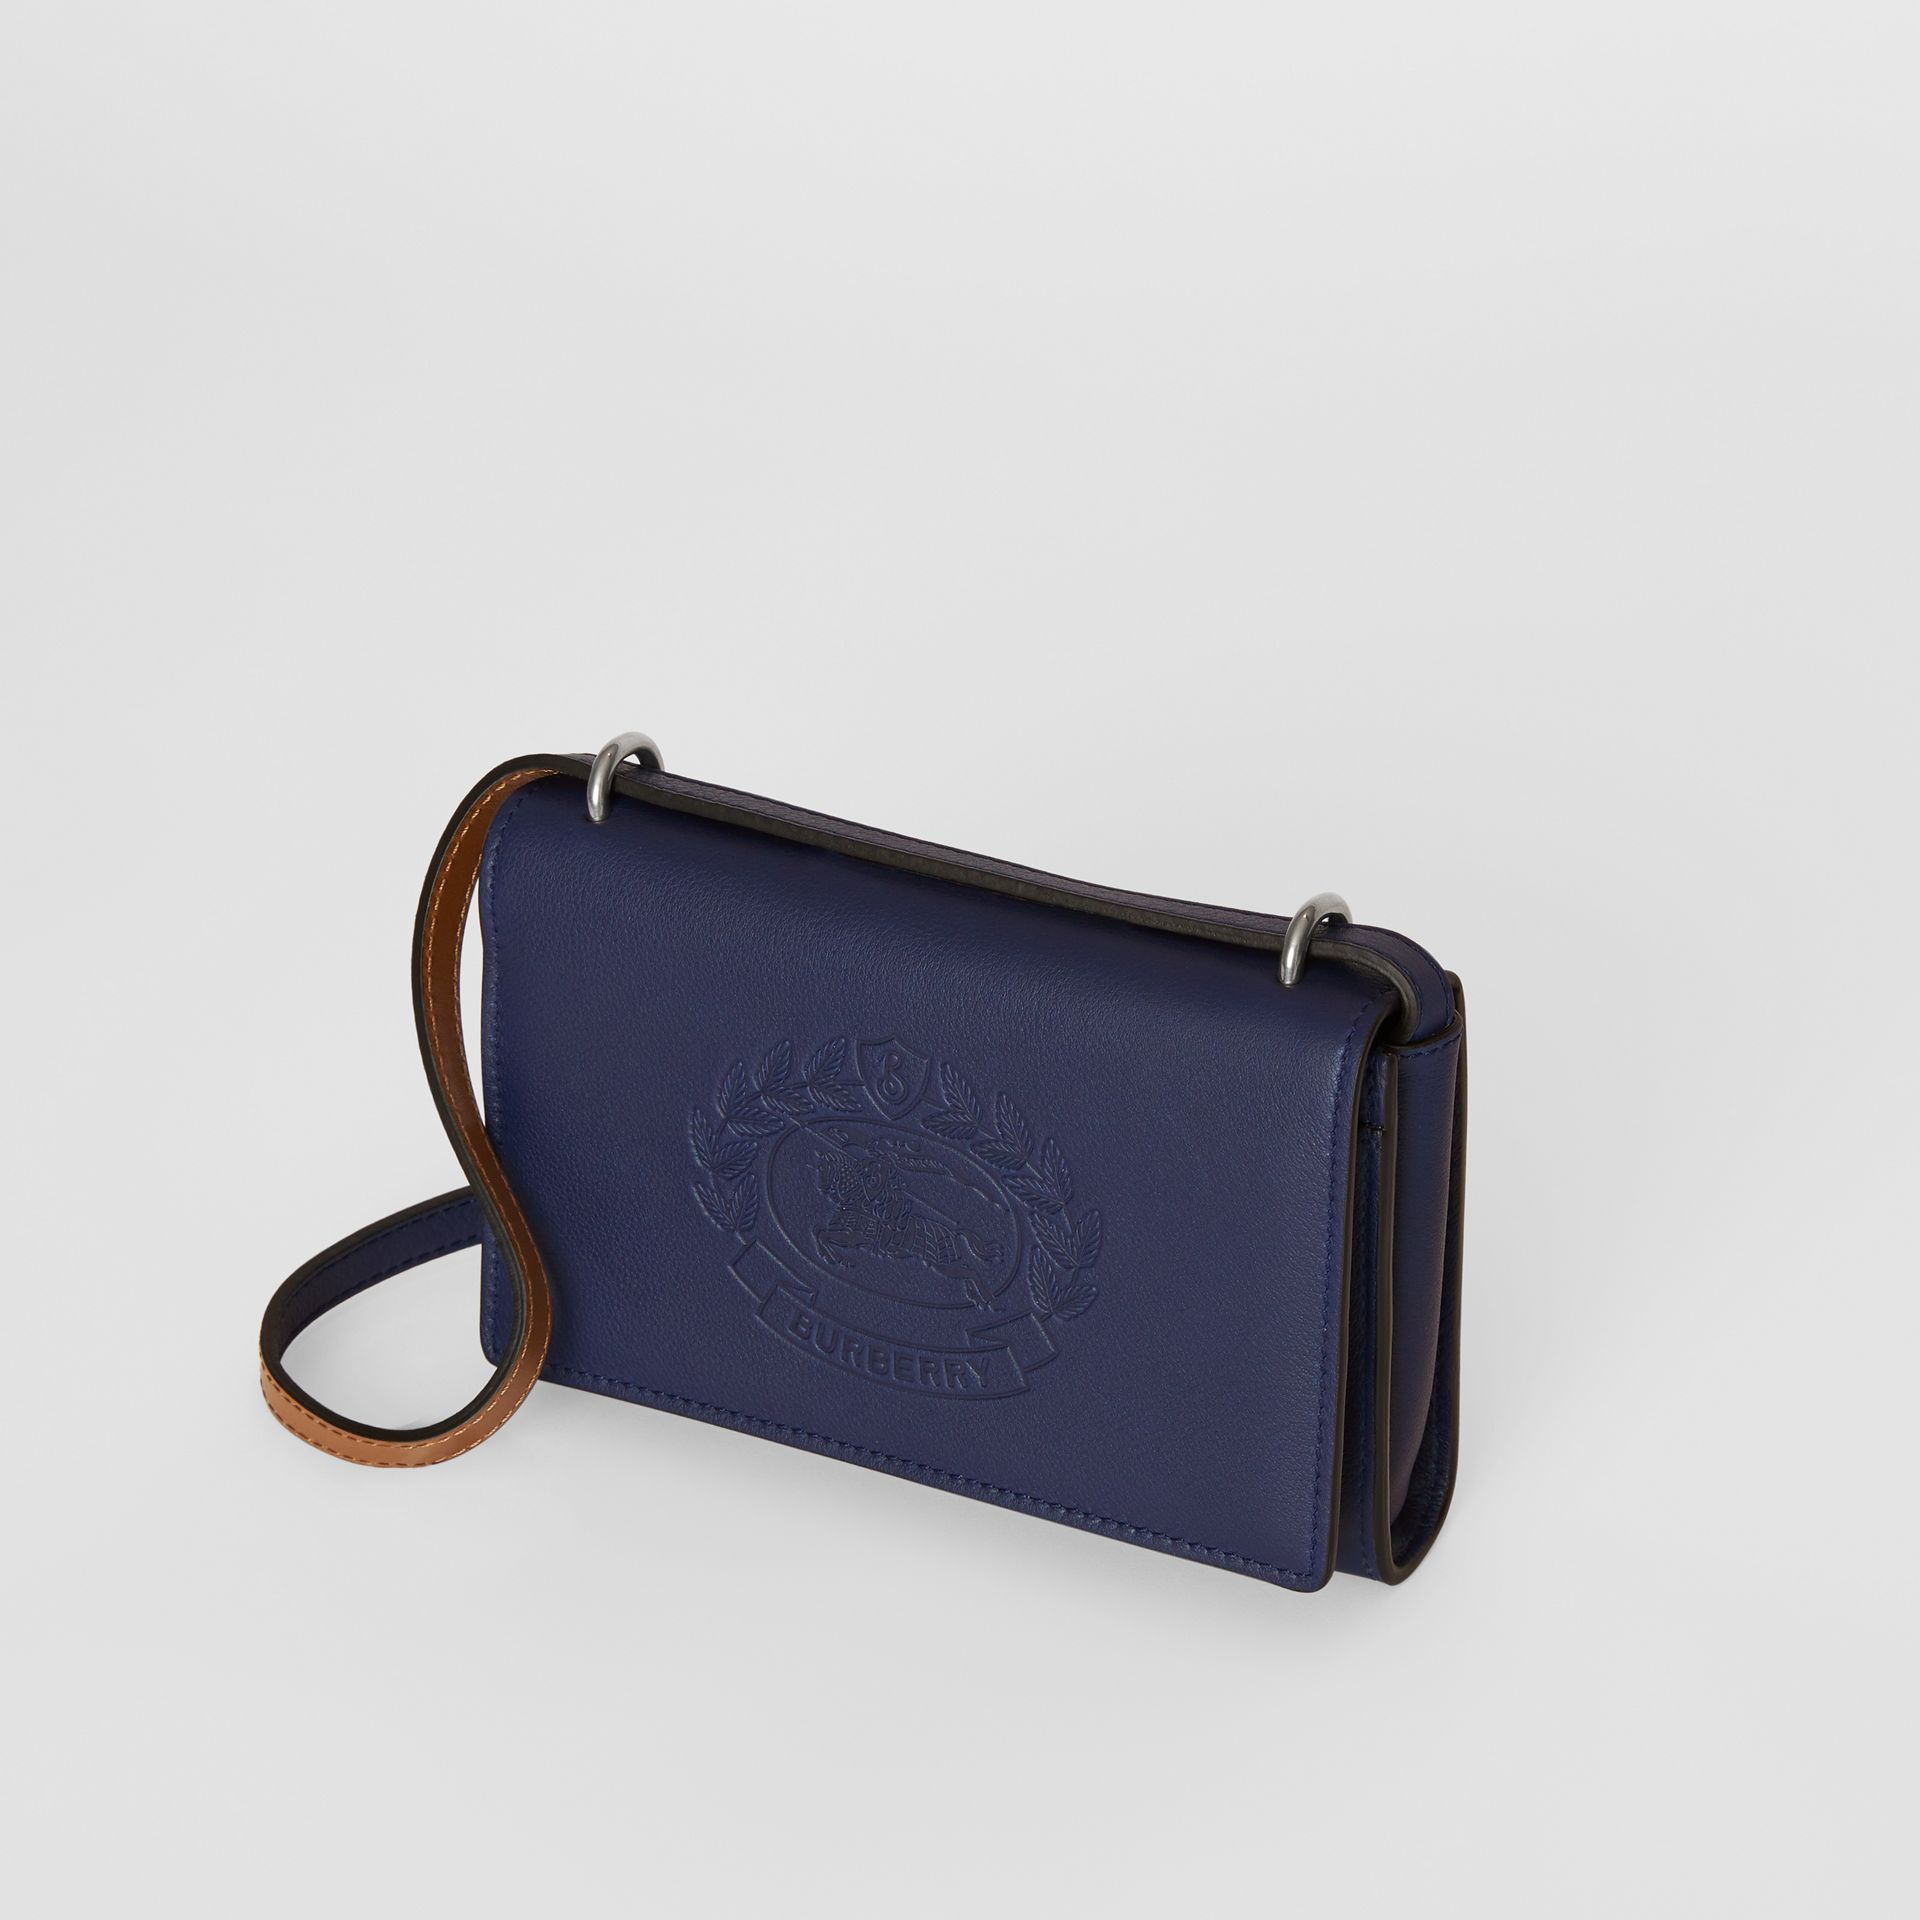 Embossed Crest Leather Wallet with Detachable Strap in Regency Blue - Women | Burberry Canada - gallery image 4